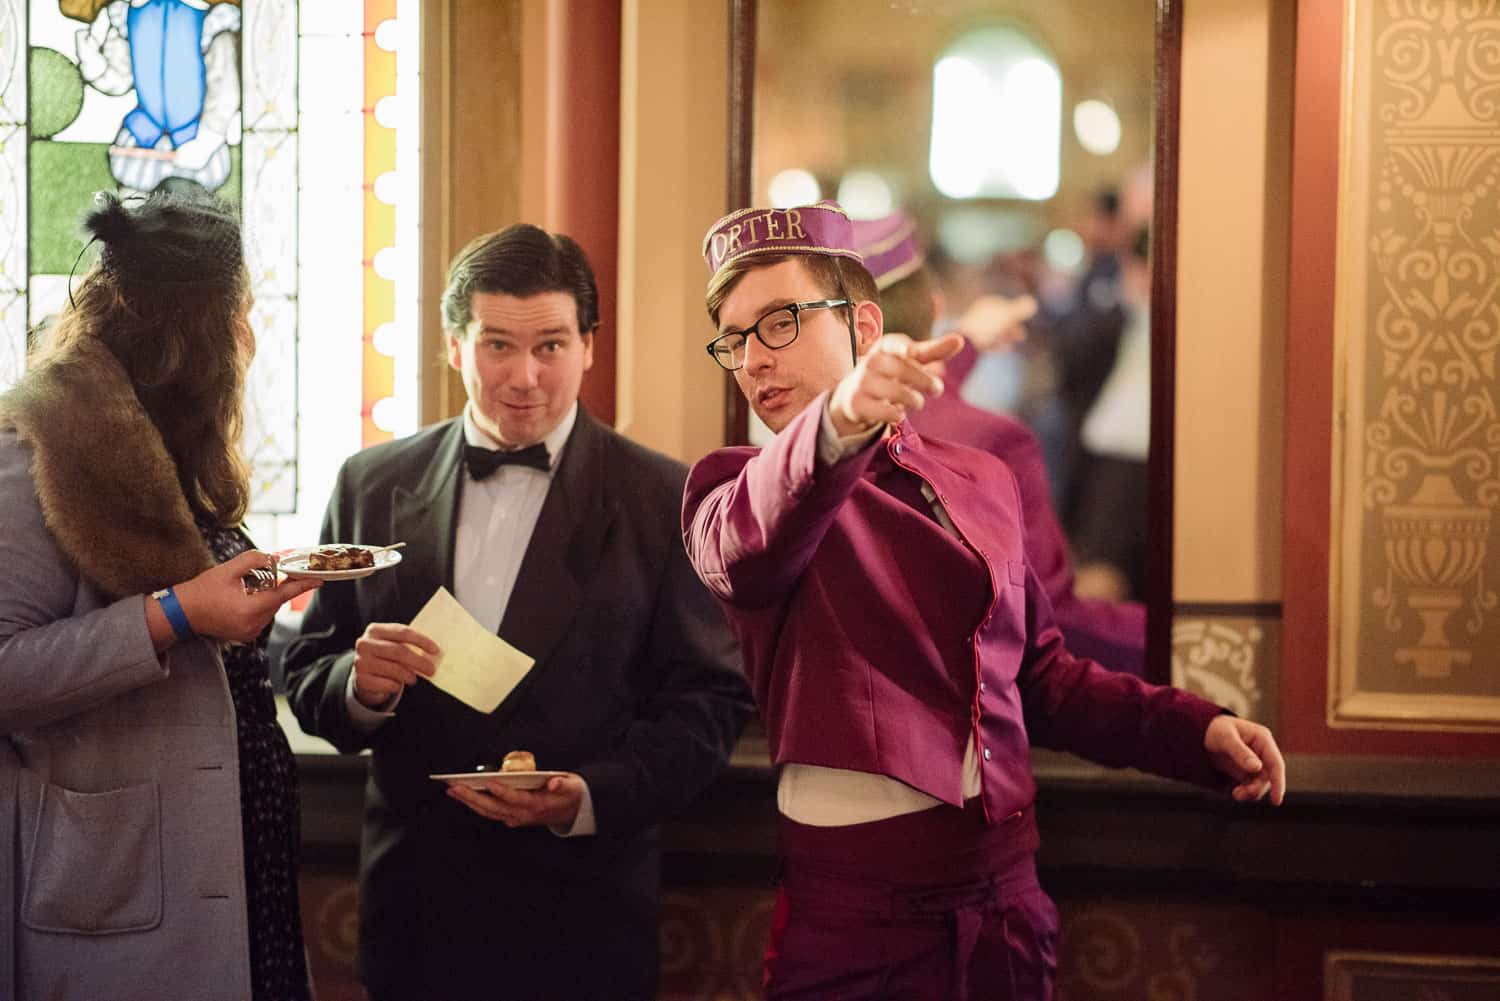 Porter directs guests at UGC Hotel